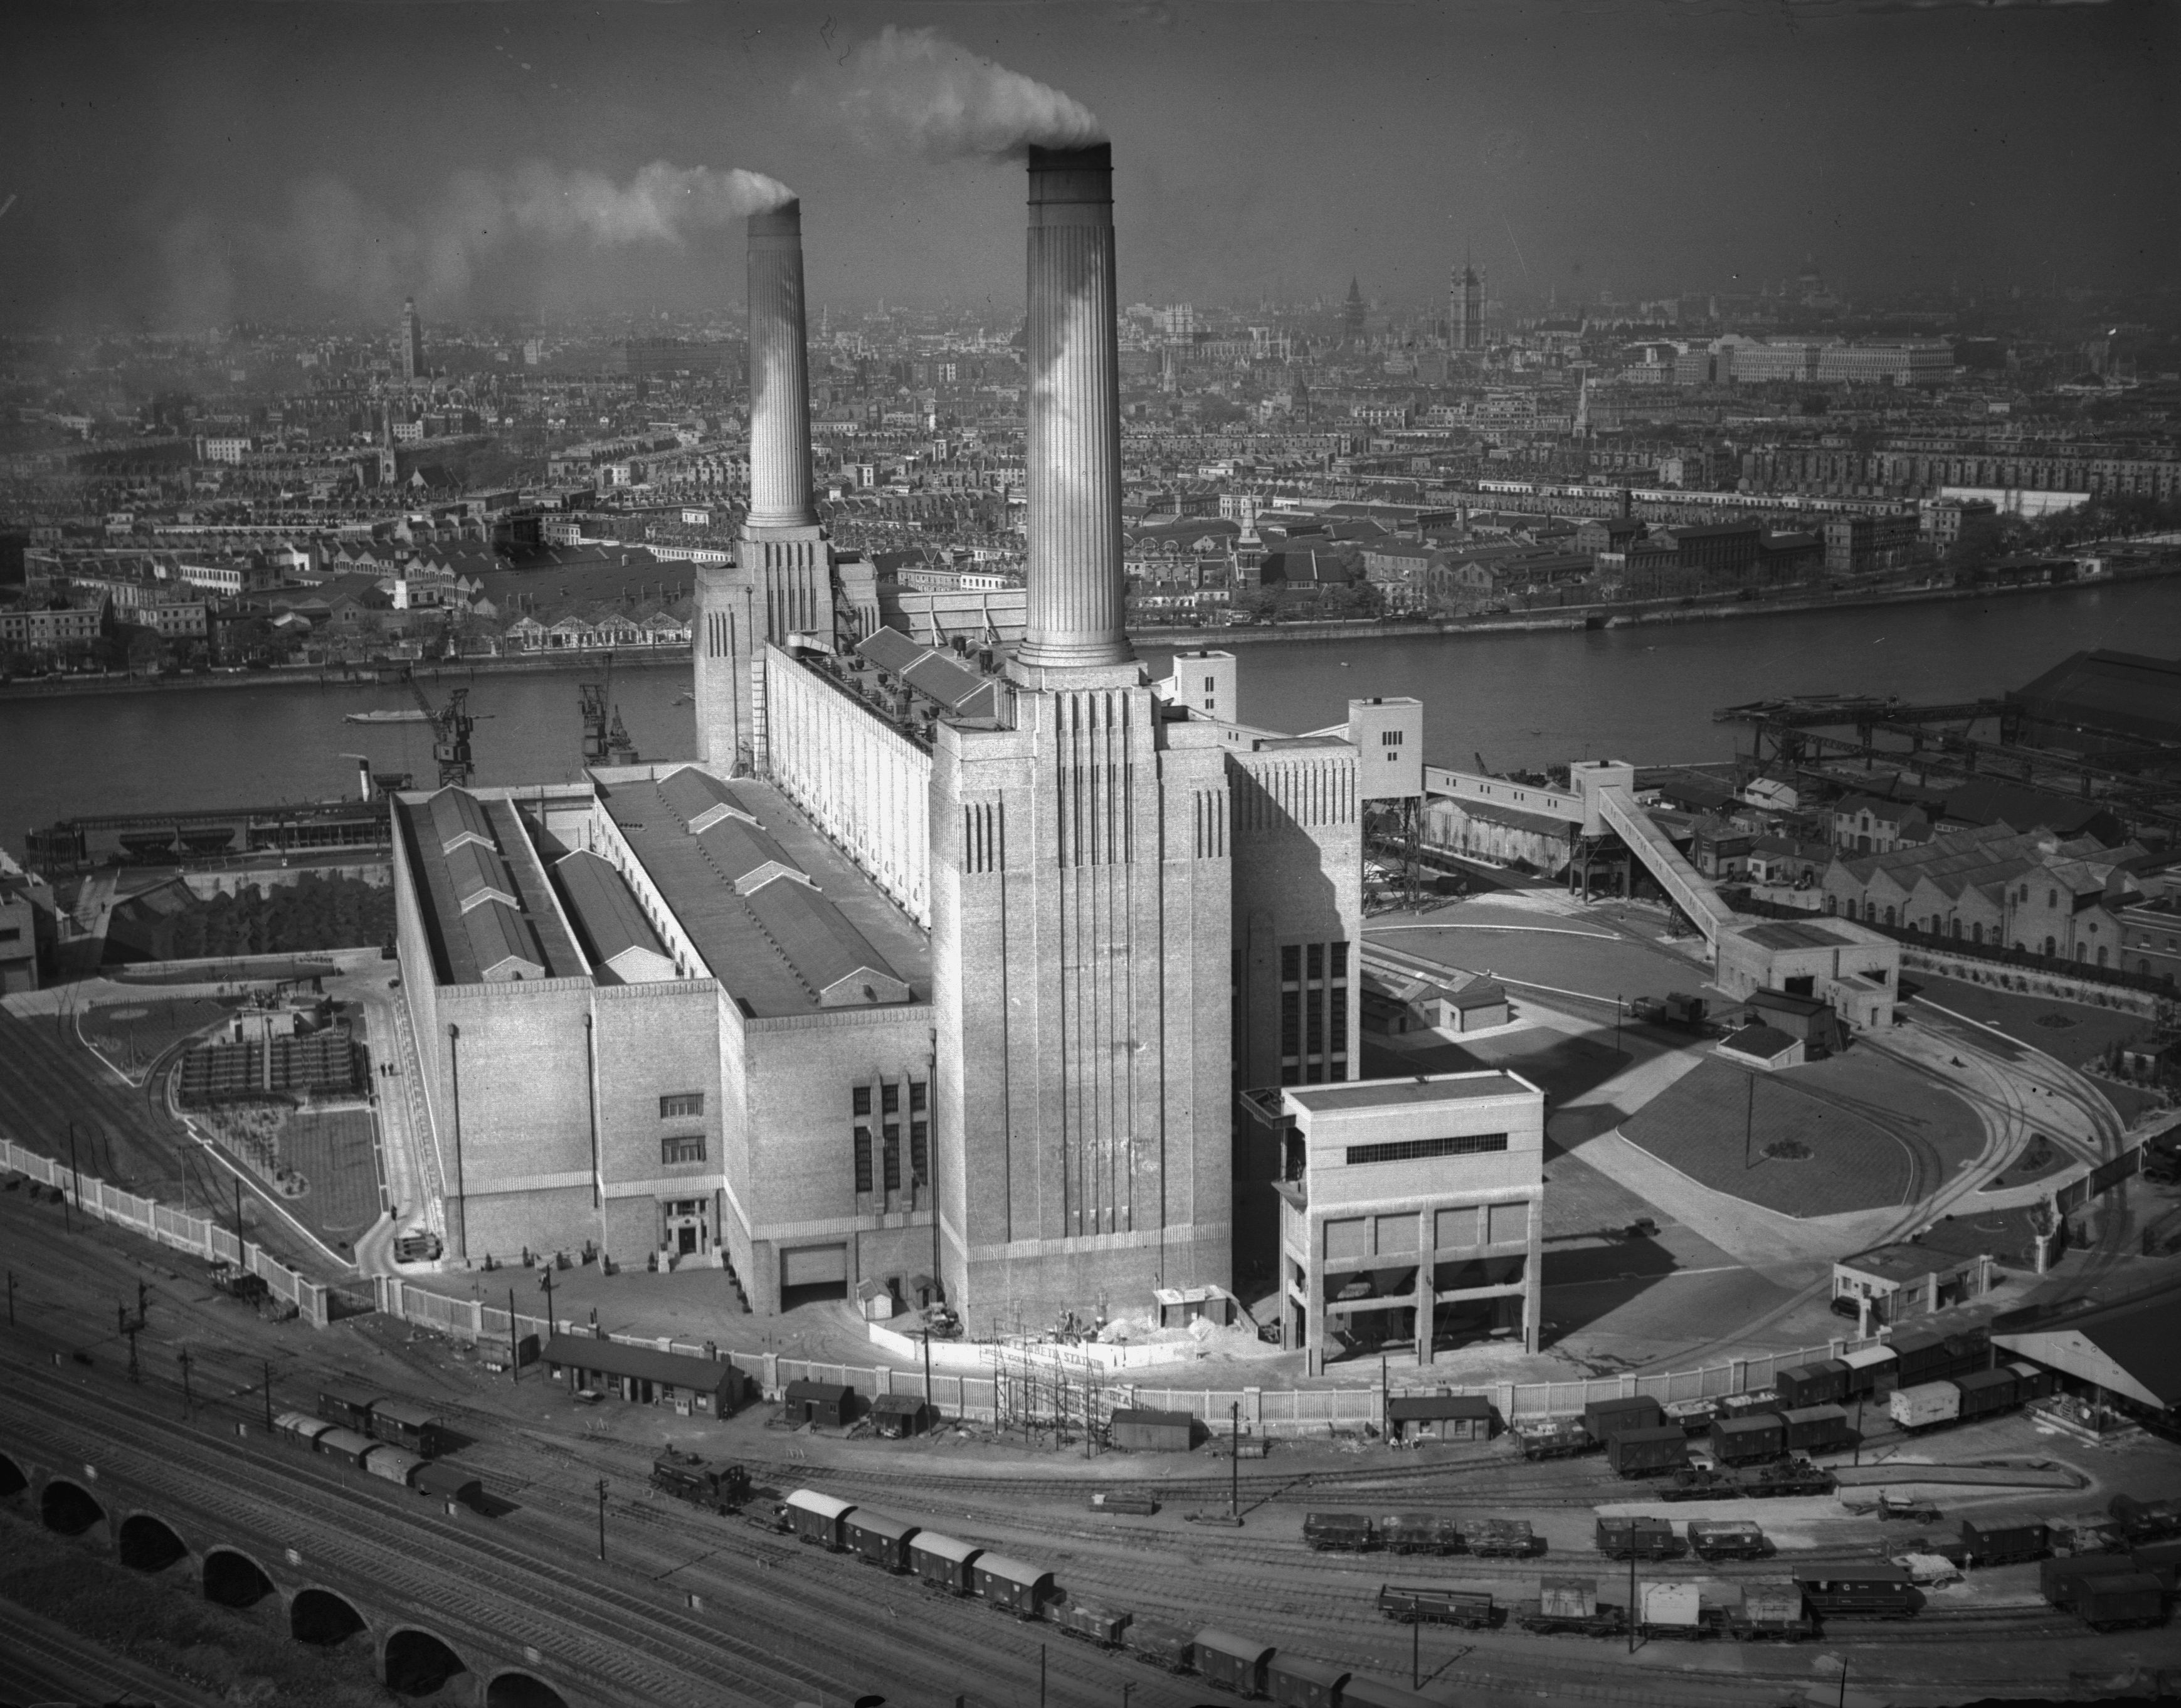 11th May 1934: Battersea Power Station on the River Thames in London, designed by architect Giles Gilbert Scott. The other two towers were not added until 1953, forming the familiar four-chimneyed silhouette. (Photo by Fox Photos/Getty Images)